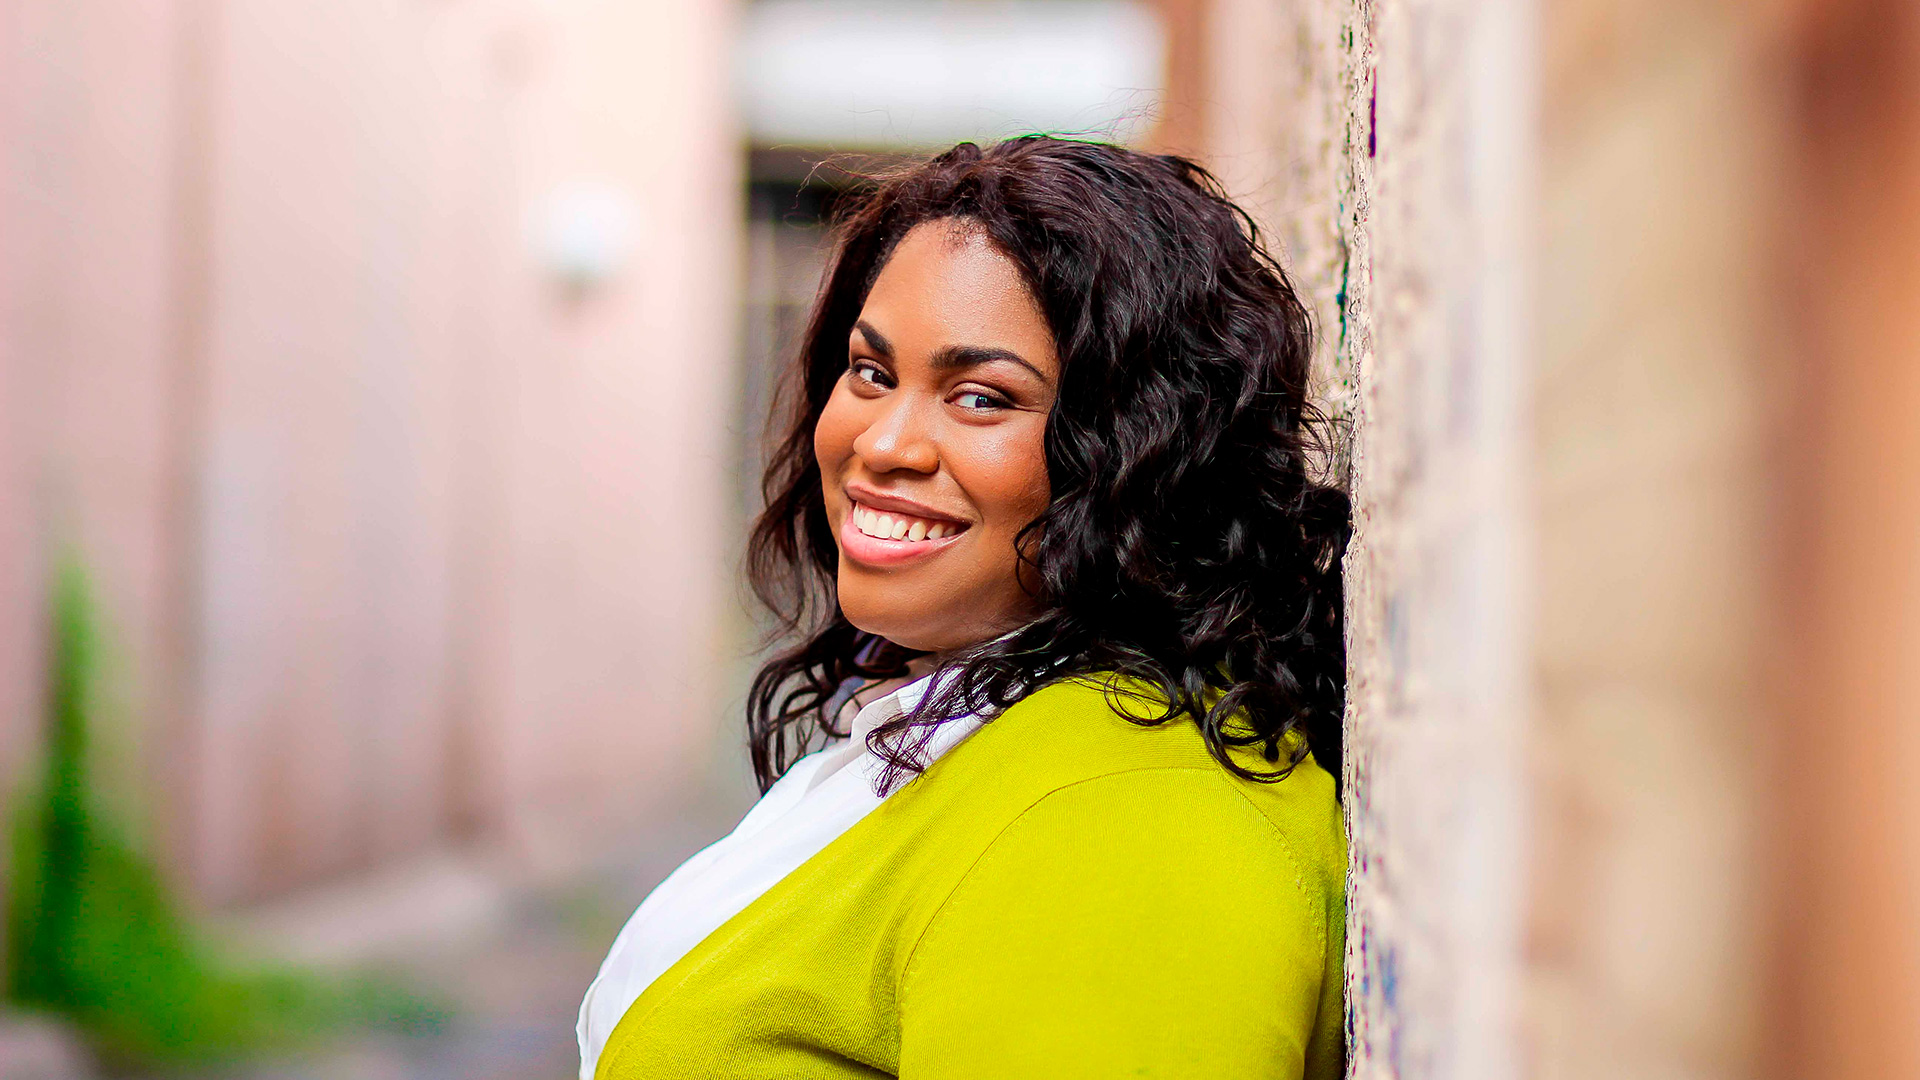 Angie Thomas, on the come up, the hate you give, concrete rose, young adult, ya, ungdomsbog